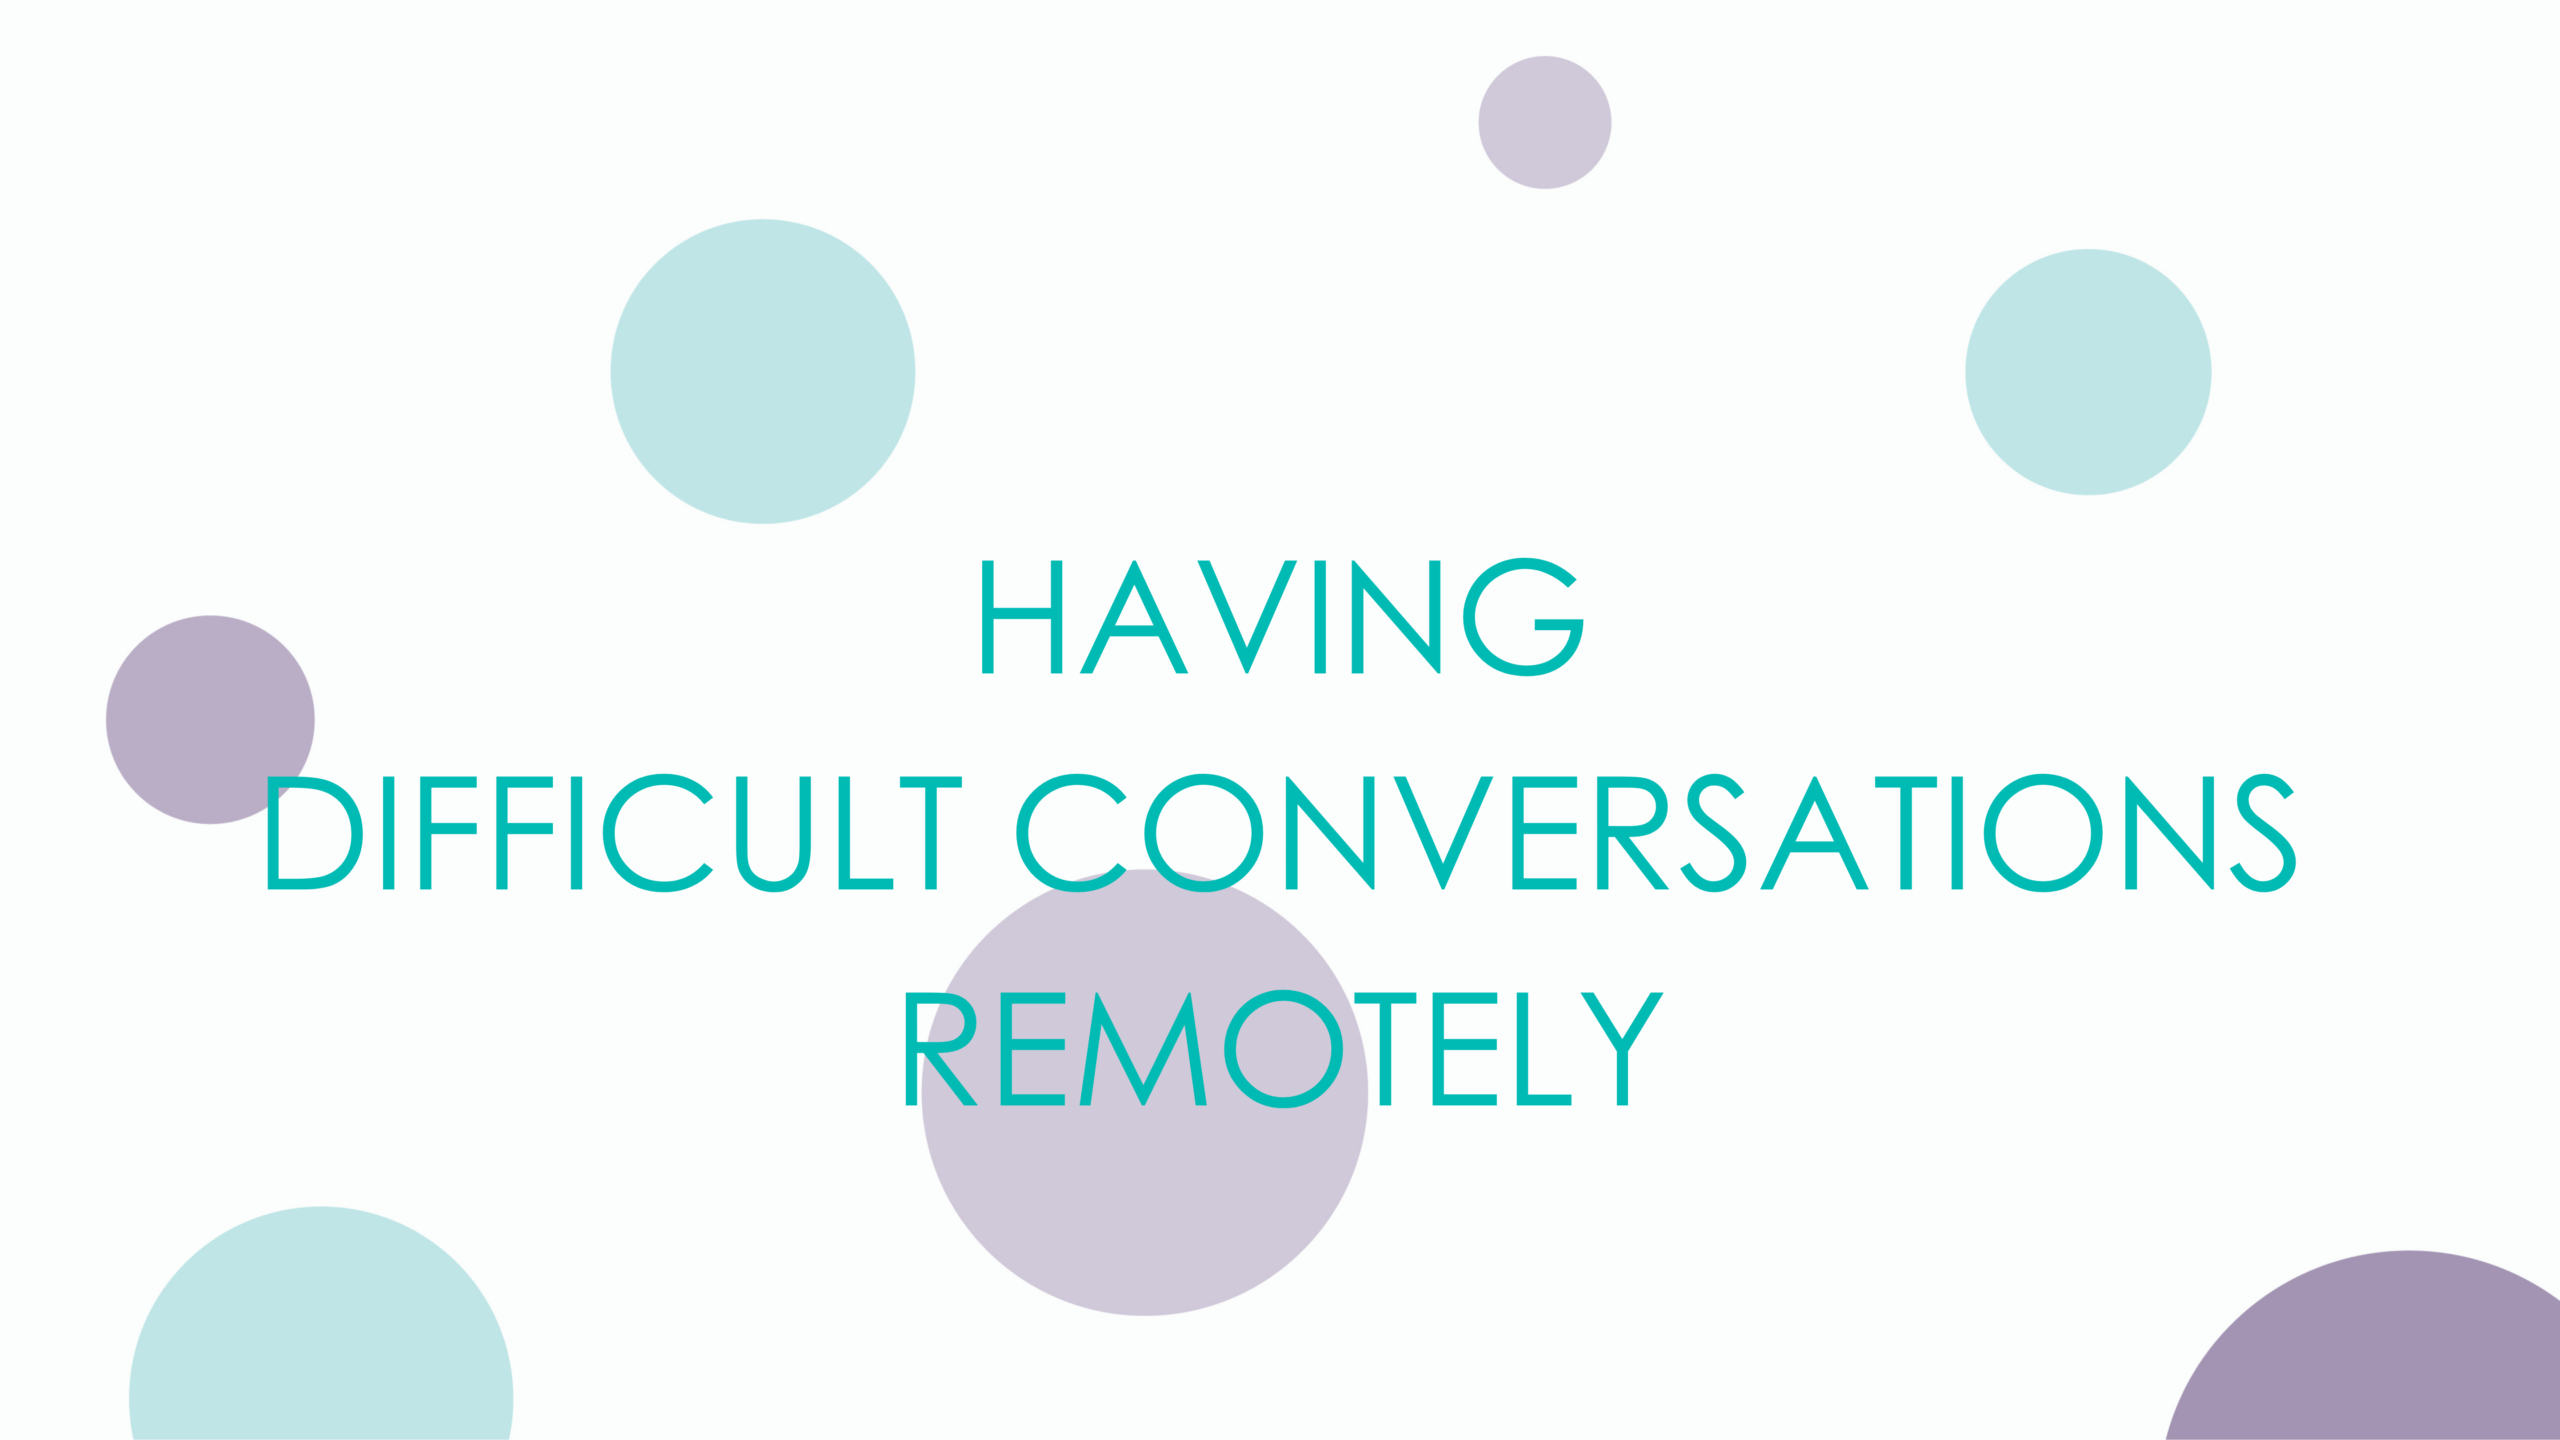 HAVING DIFFICULT CONVERSATIONS REMOTELY